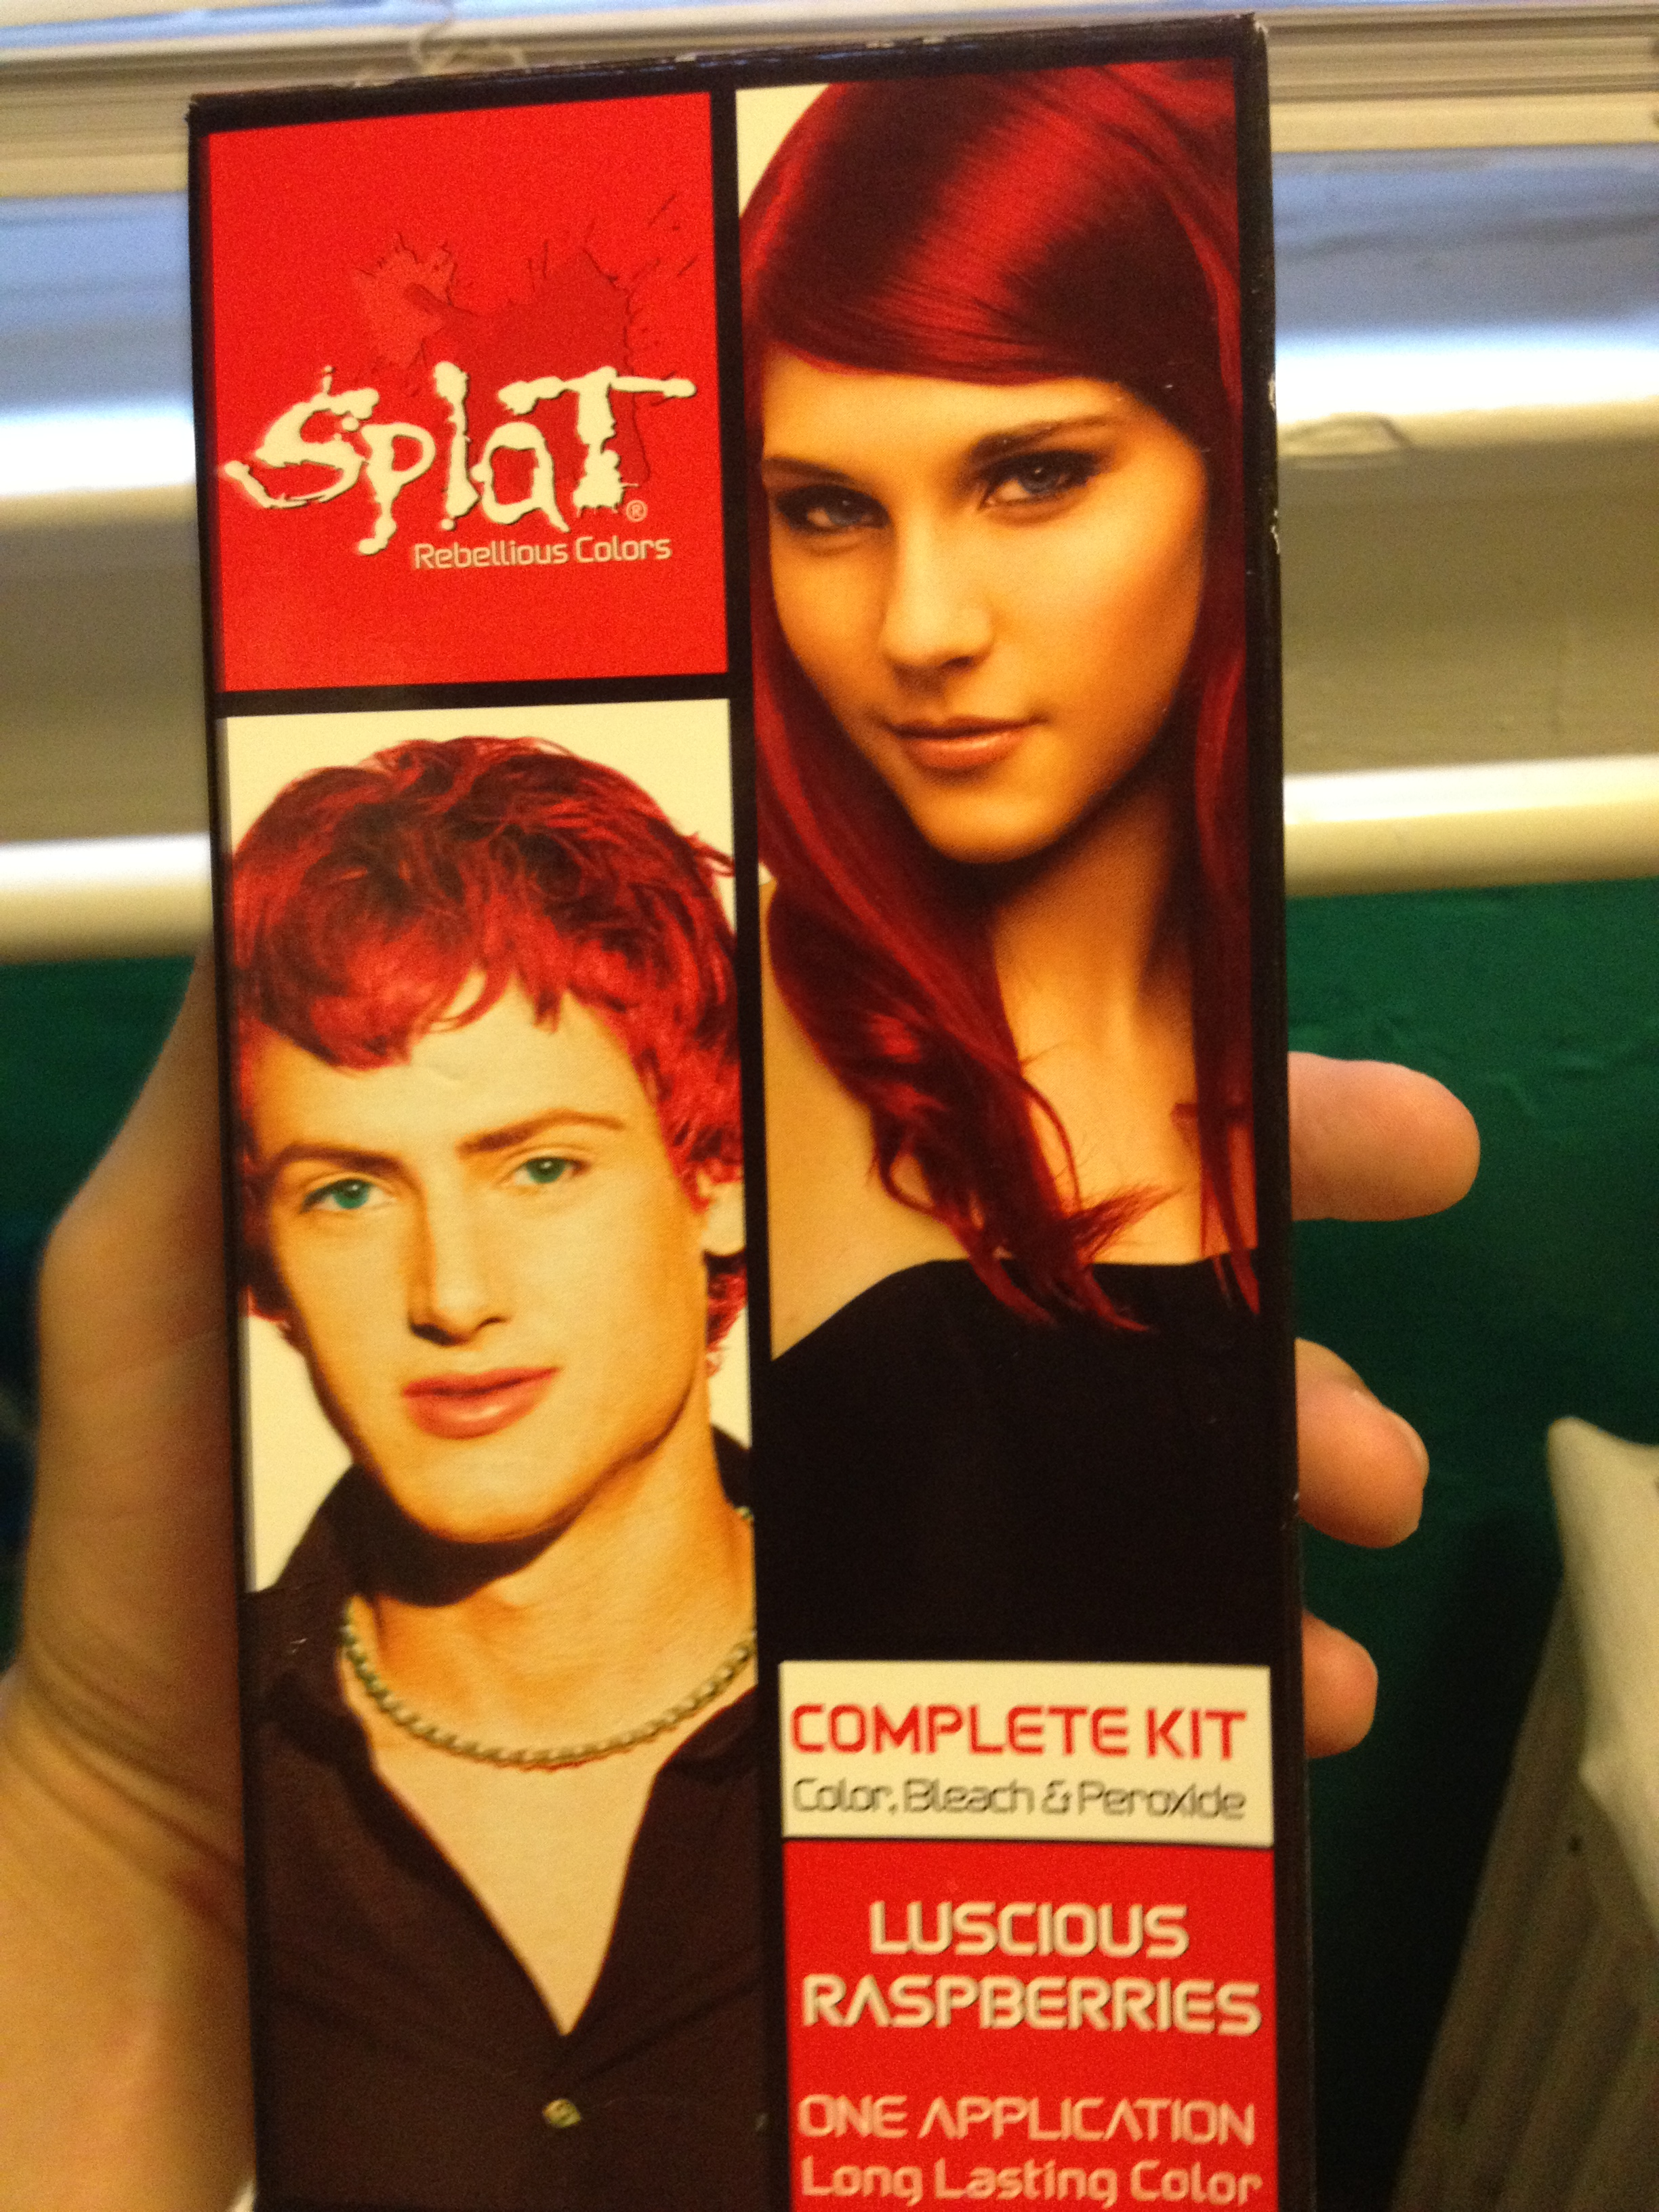 How To Dye Your Facial Hair Bright Red The Polymaths Dilemma